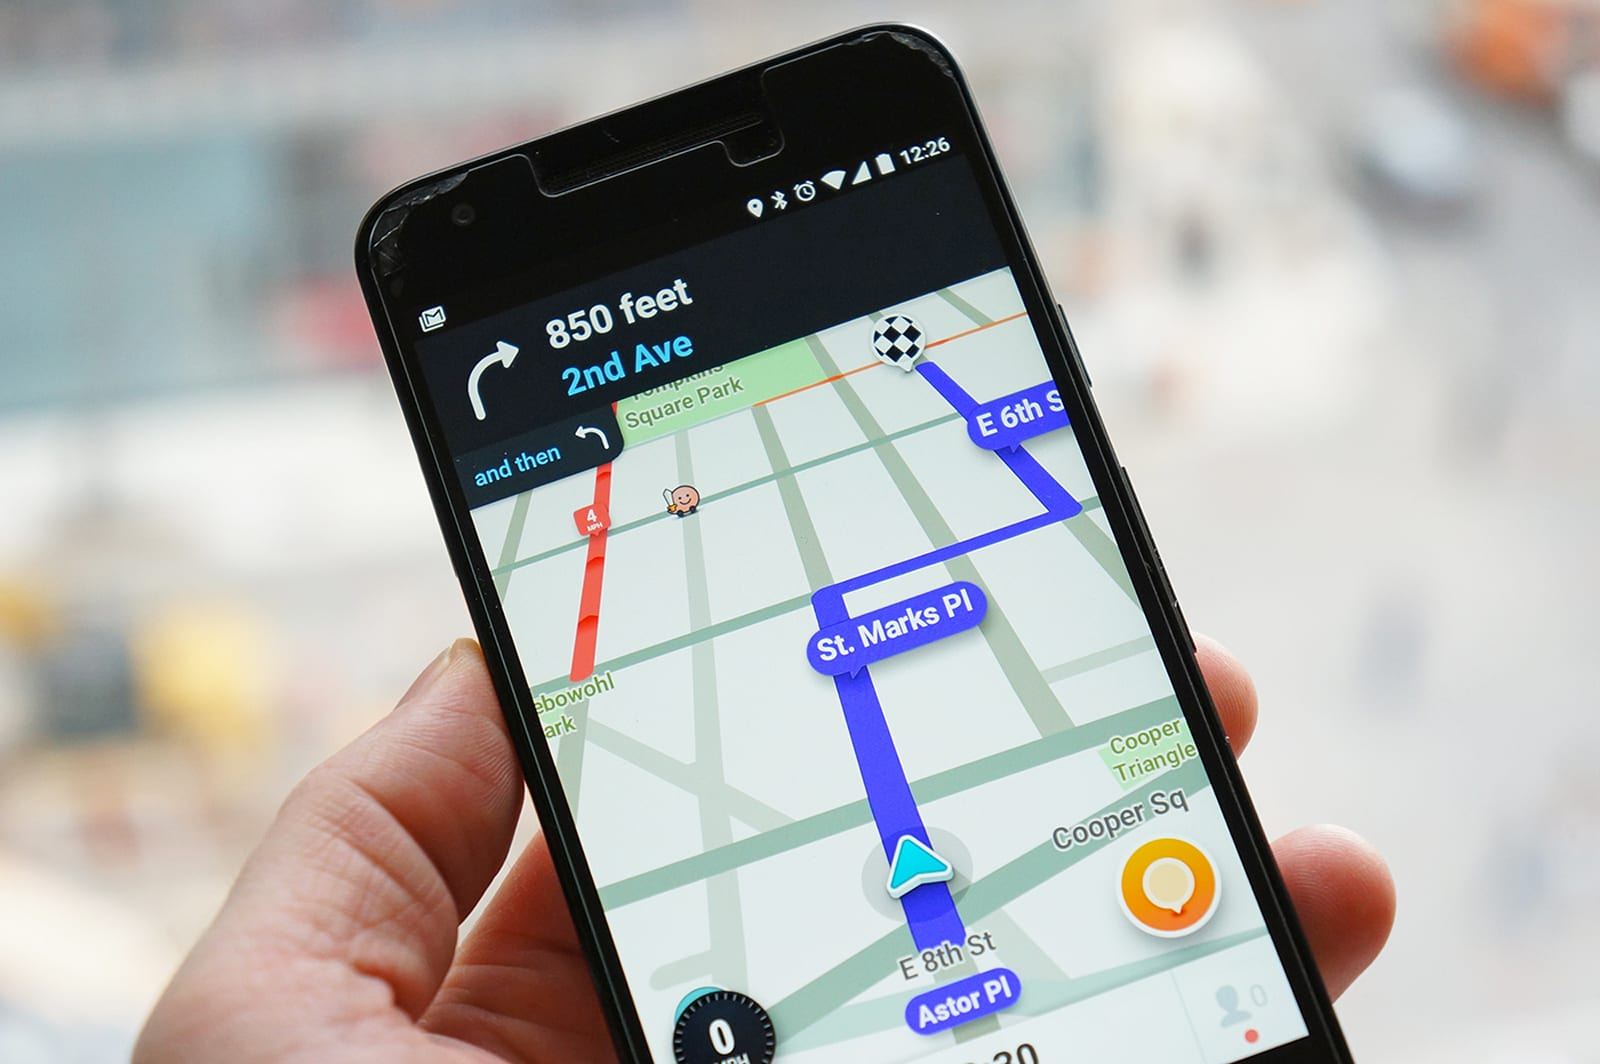 Waze sends real-time accident data to drivers and first responders